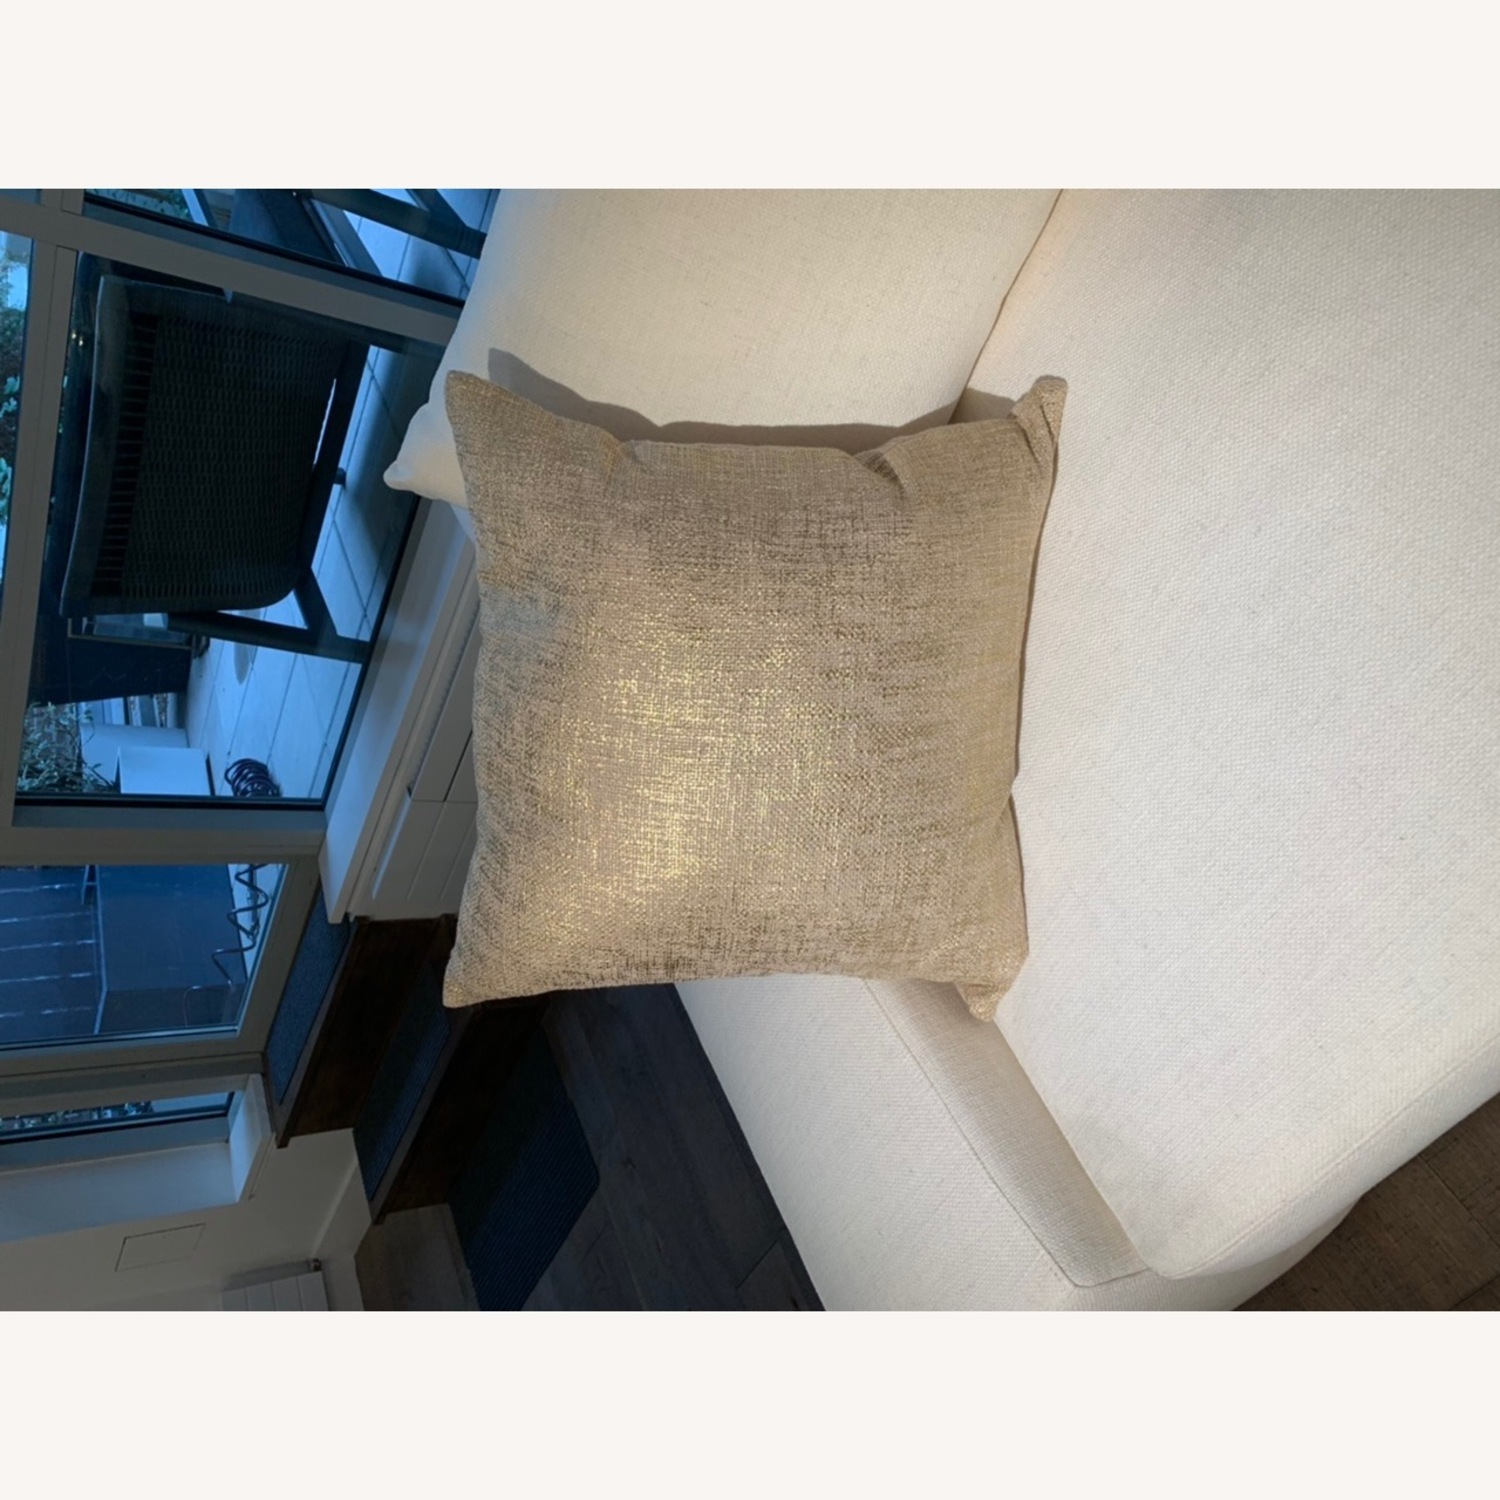 CB2 Glitterati Accent Pillows - Gold - image-6